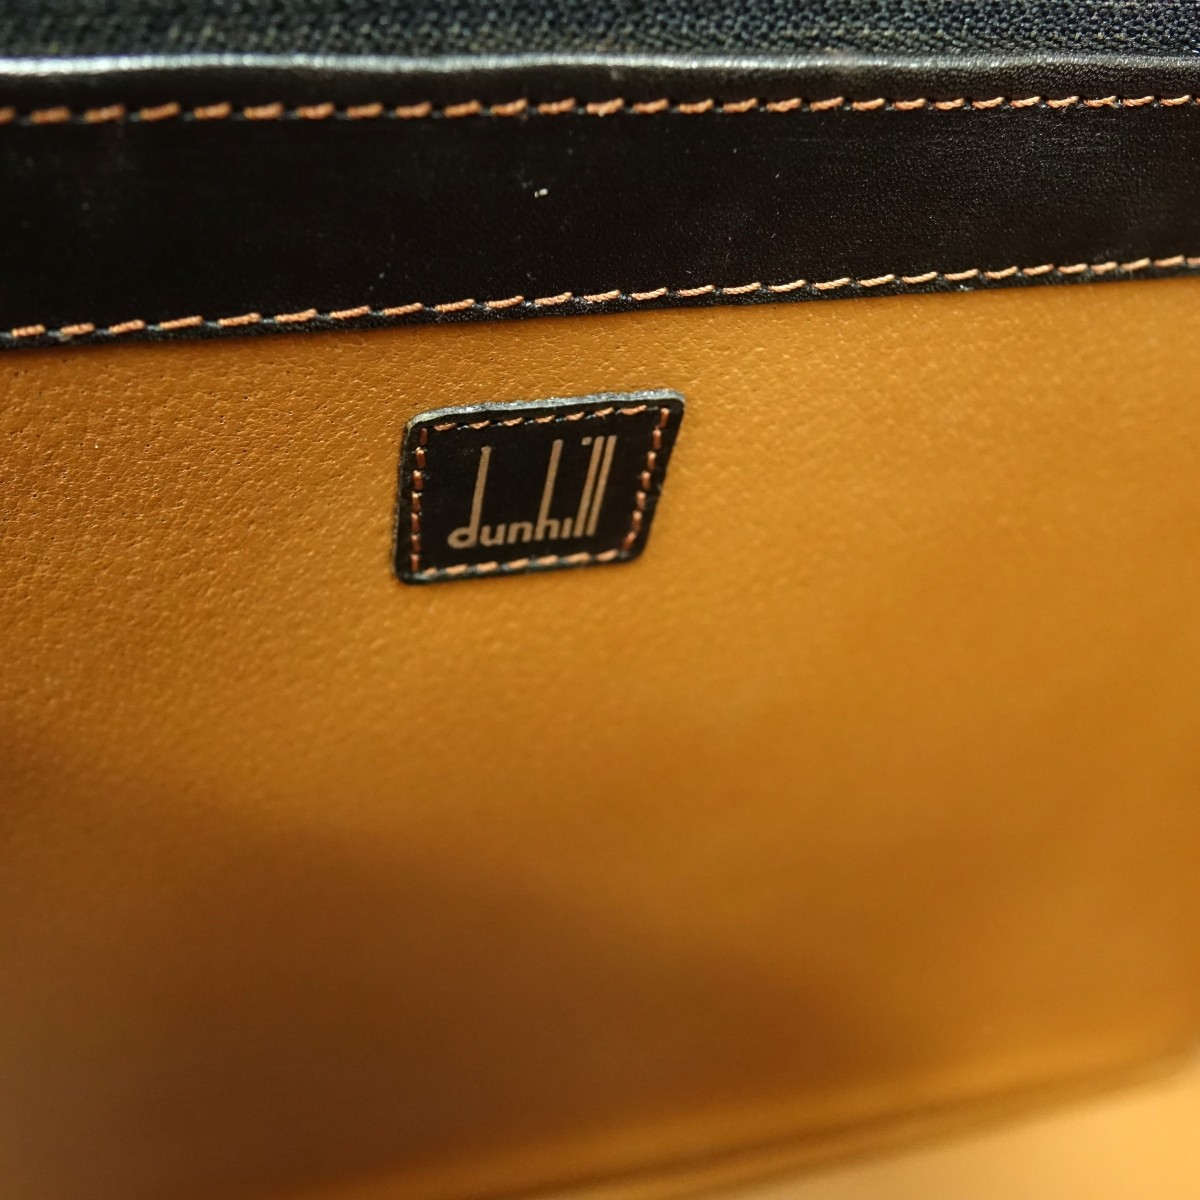 Dunhill Attache Case